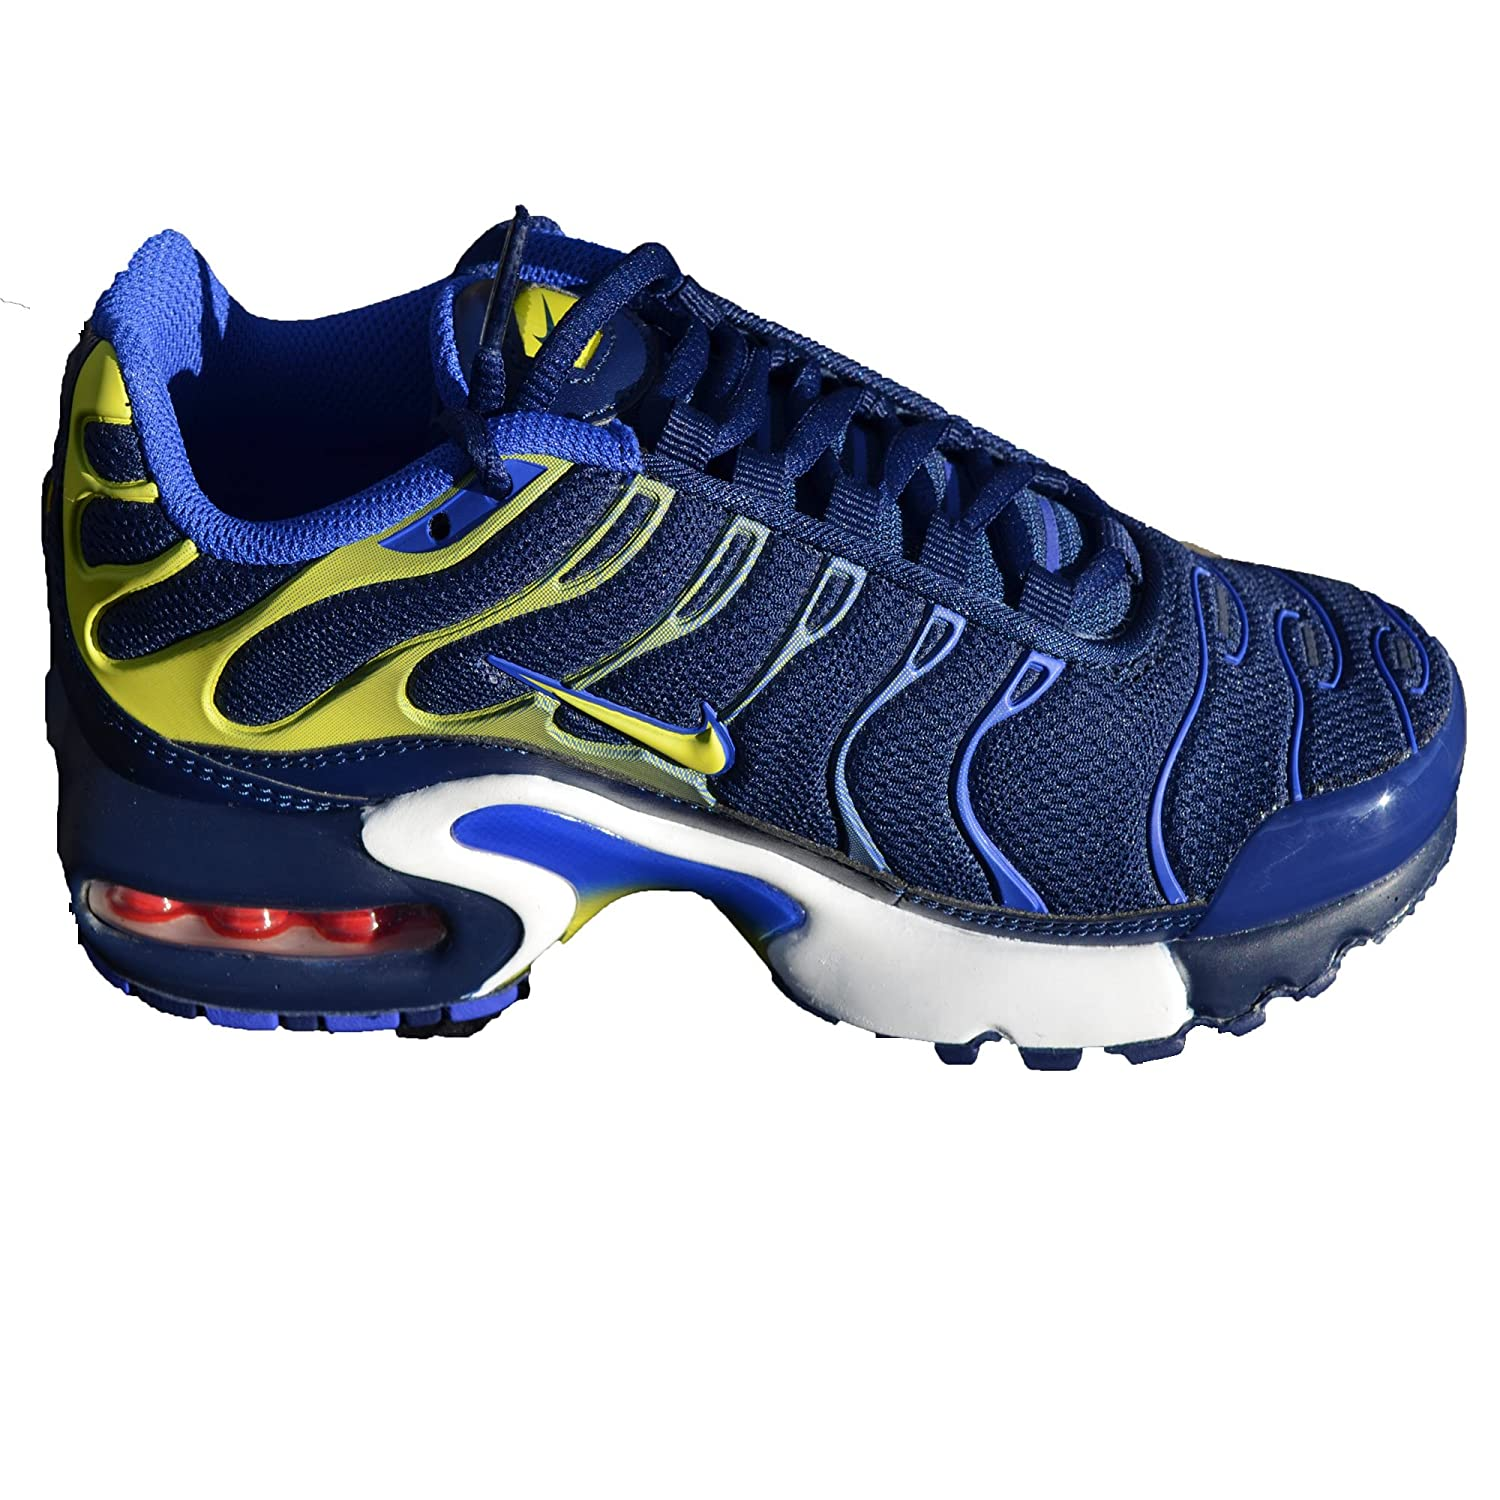 reputable site 5d81a 845fd aliexpress nike air max tn blue orange games 7c60a f9bb1